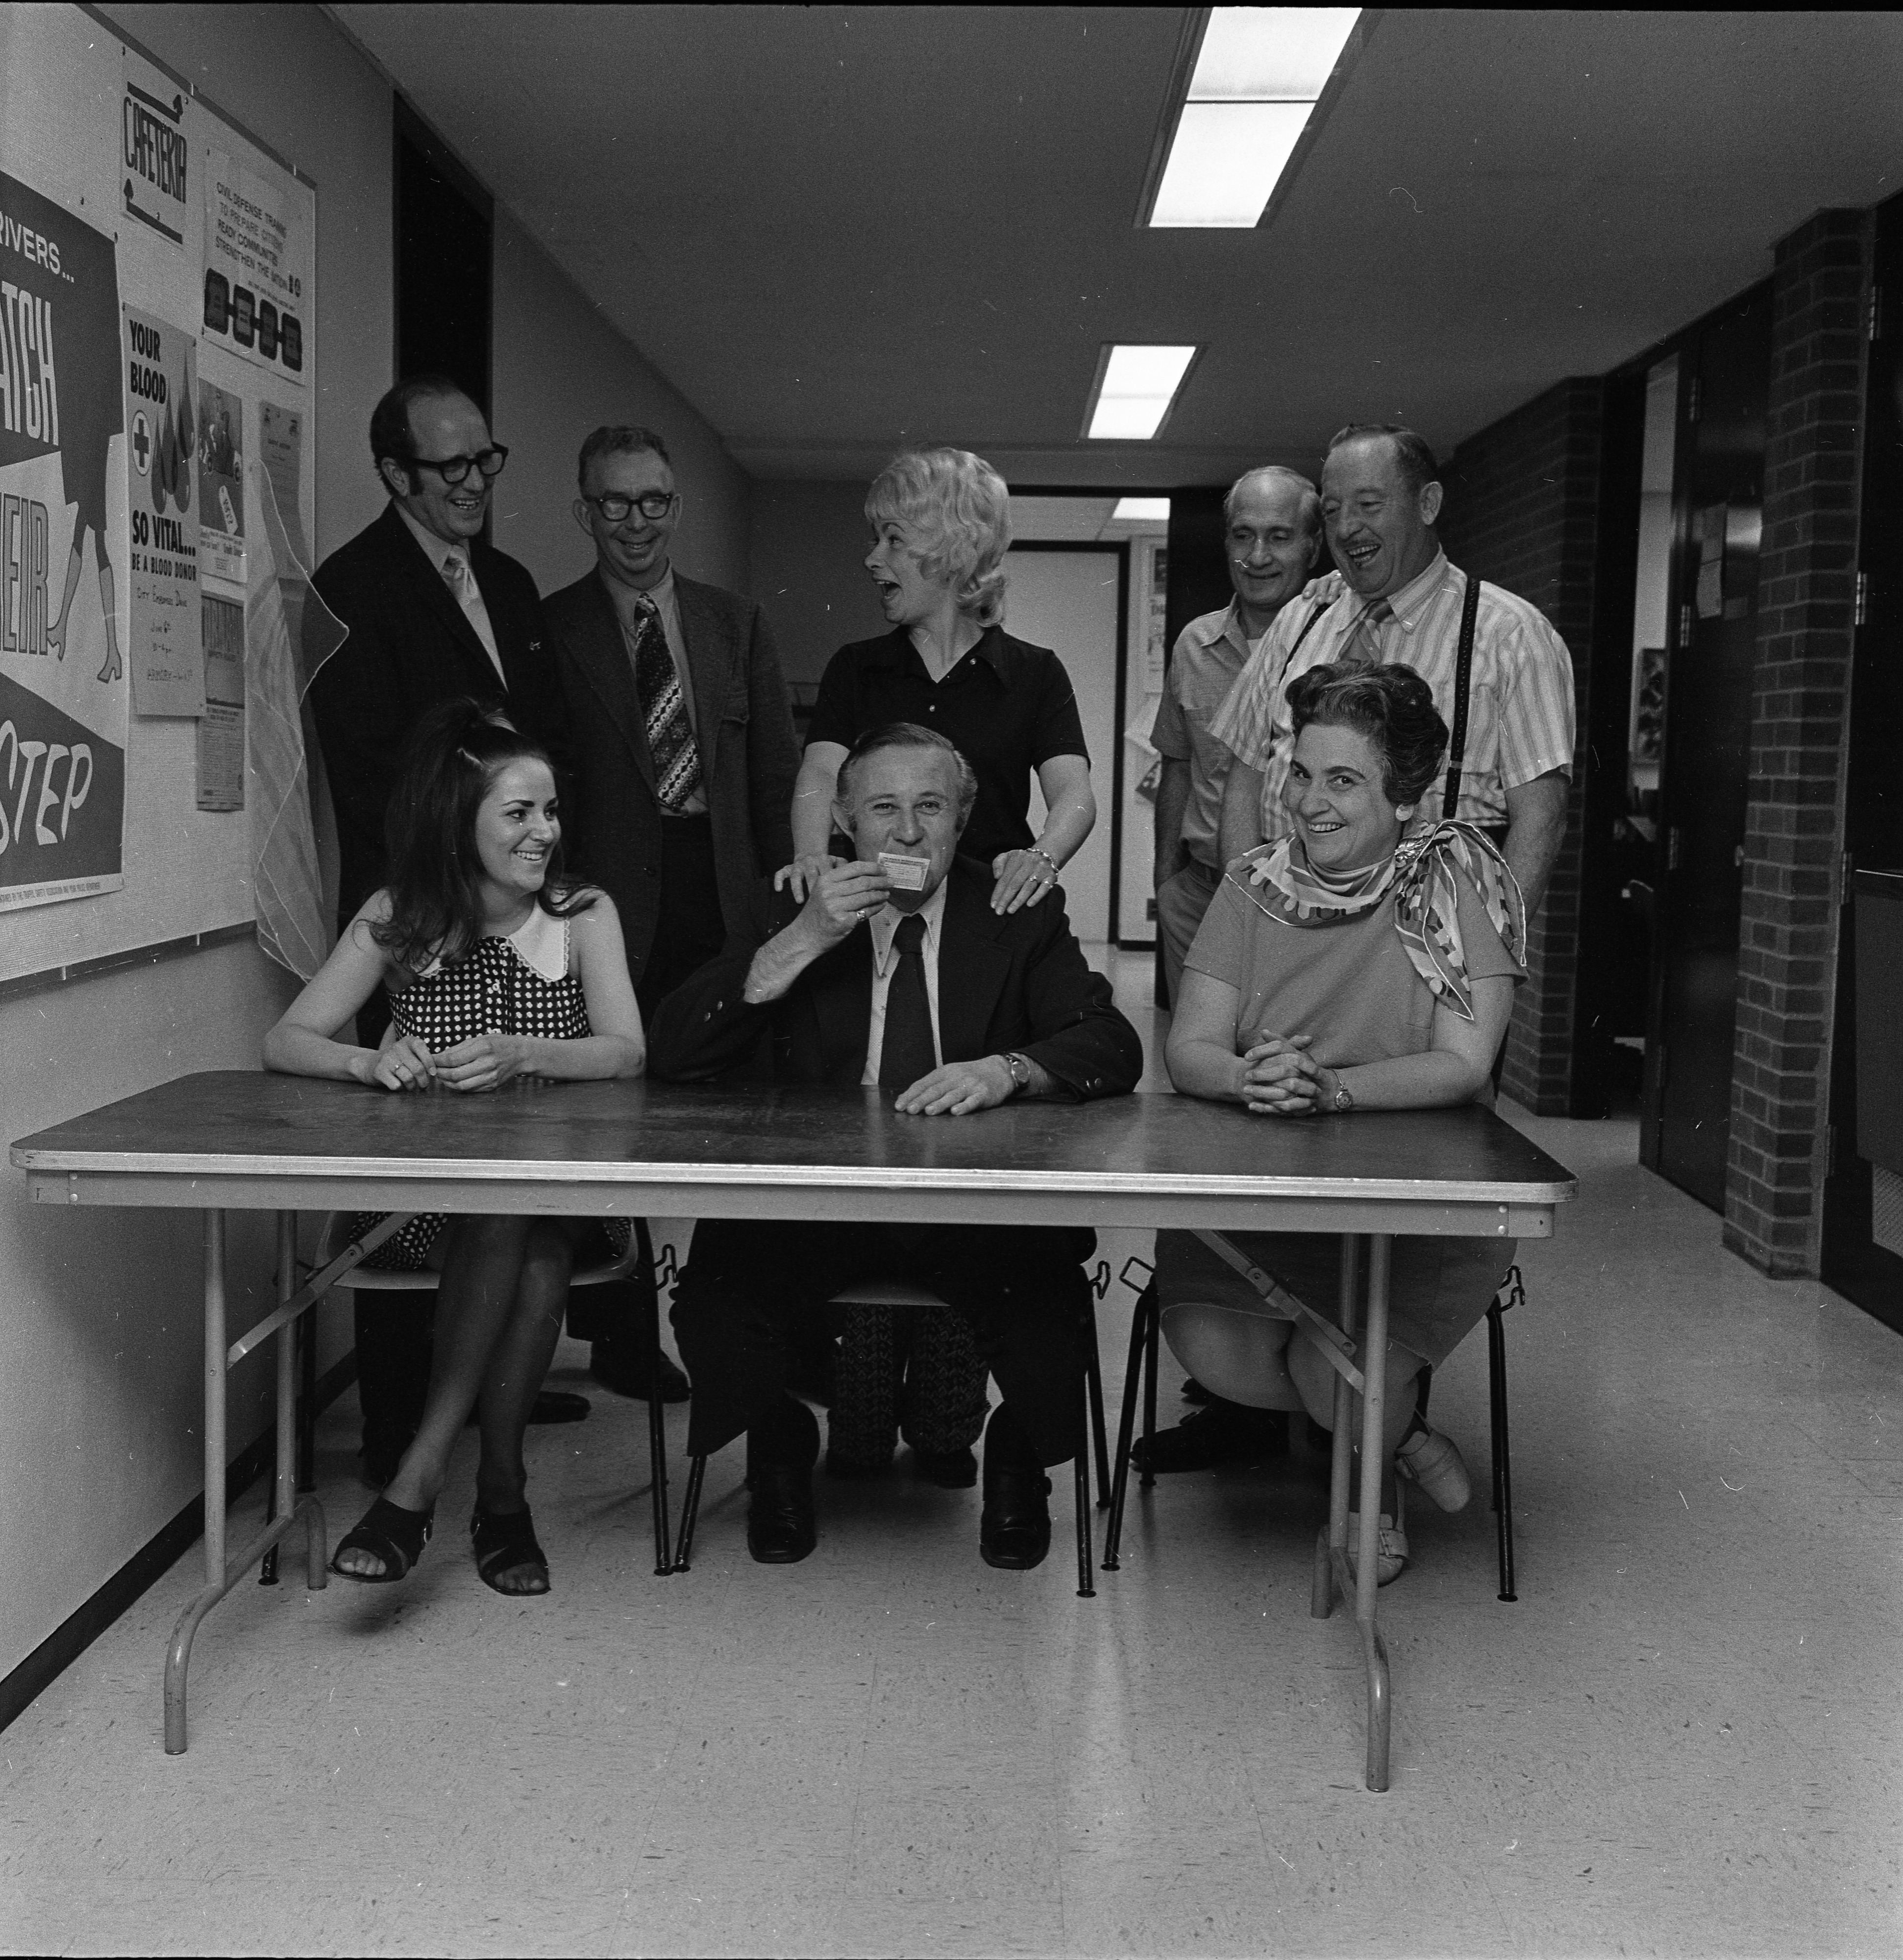 Ann Arbor City Hall Employees Win $10,000 In Lottery, May 24, 1973 image